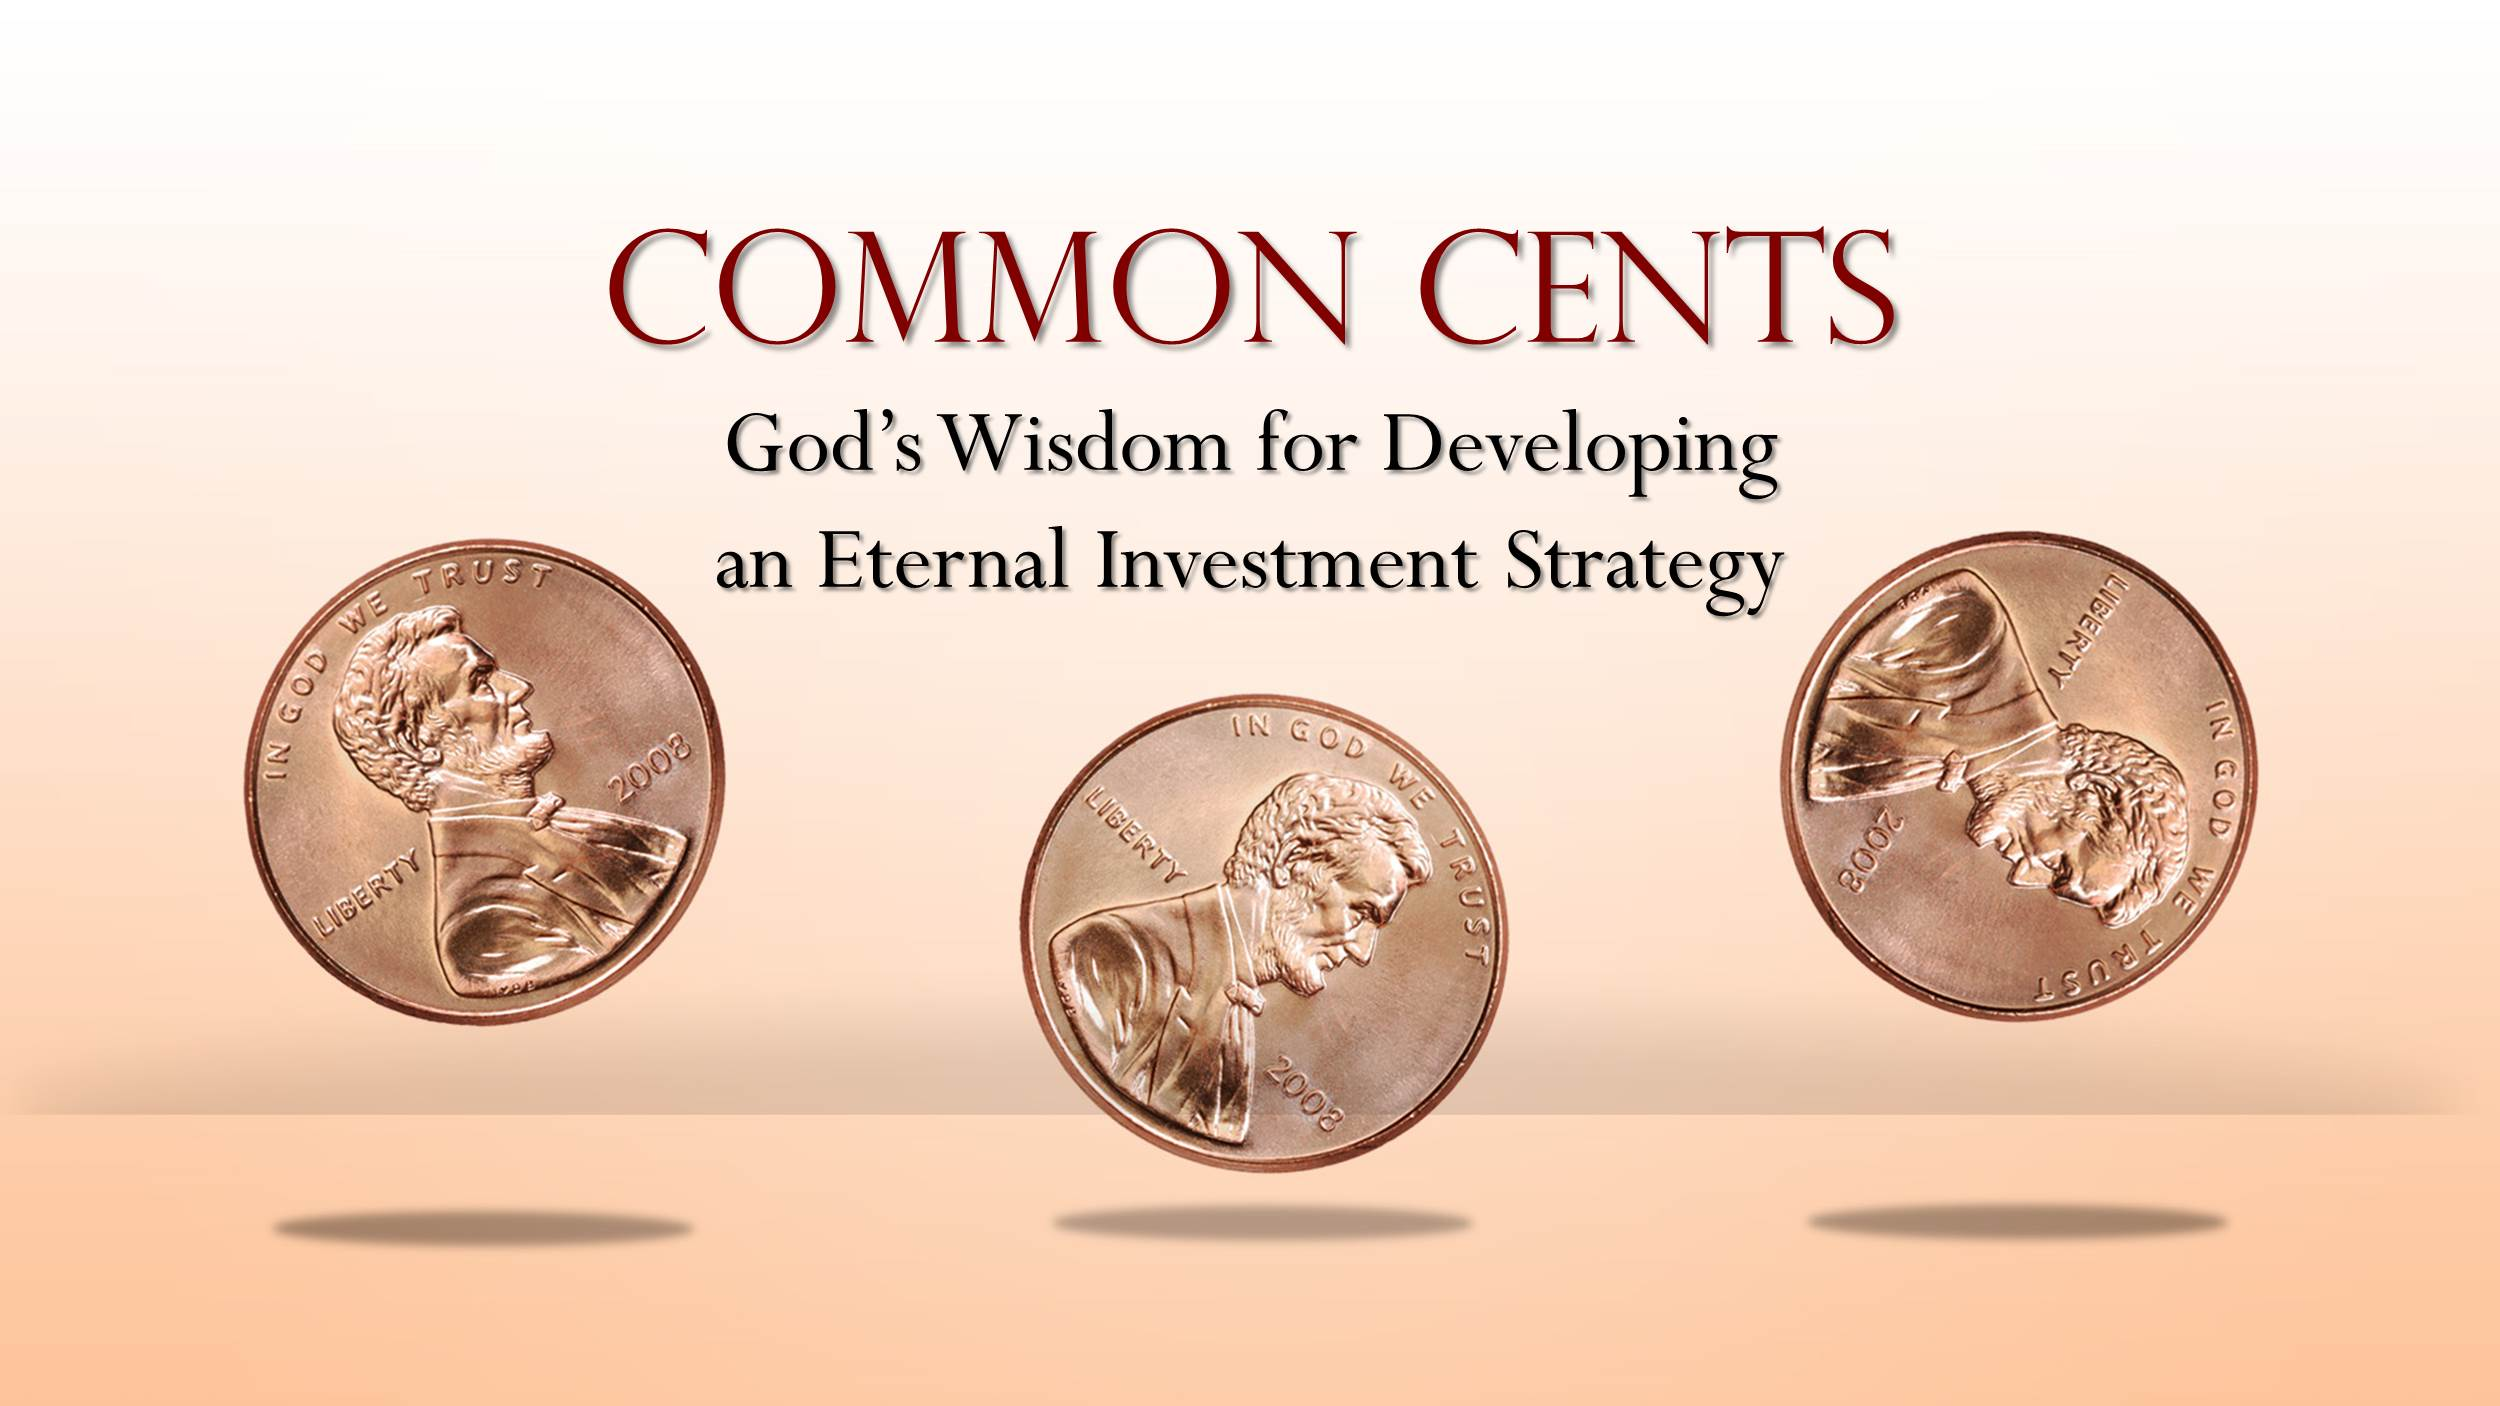 Common Cents:  God's Wisdom for Developing an Eternal Investment Strategy (10/15/17)